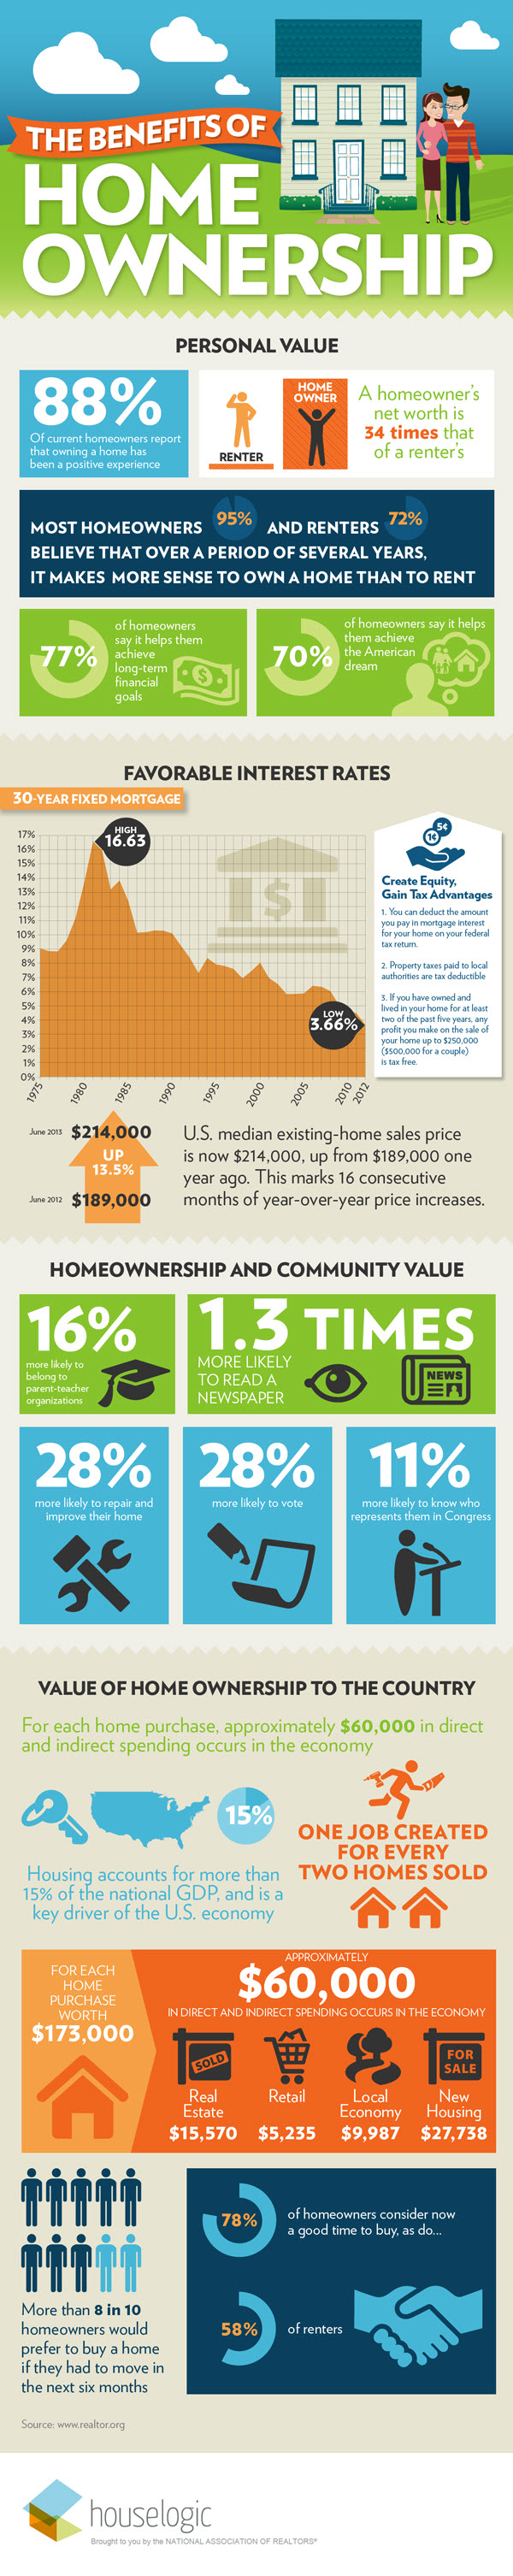 infographic-benefits-homeownership_75469be0403817a5ce36a9bb01295469